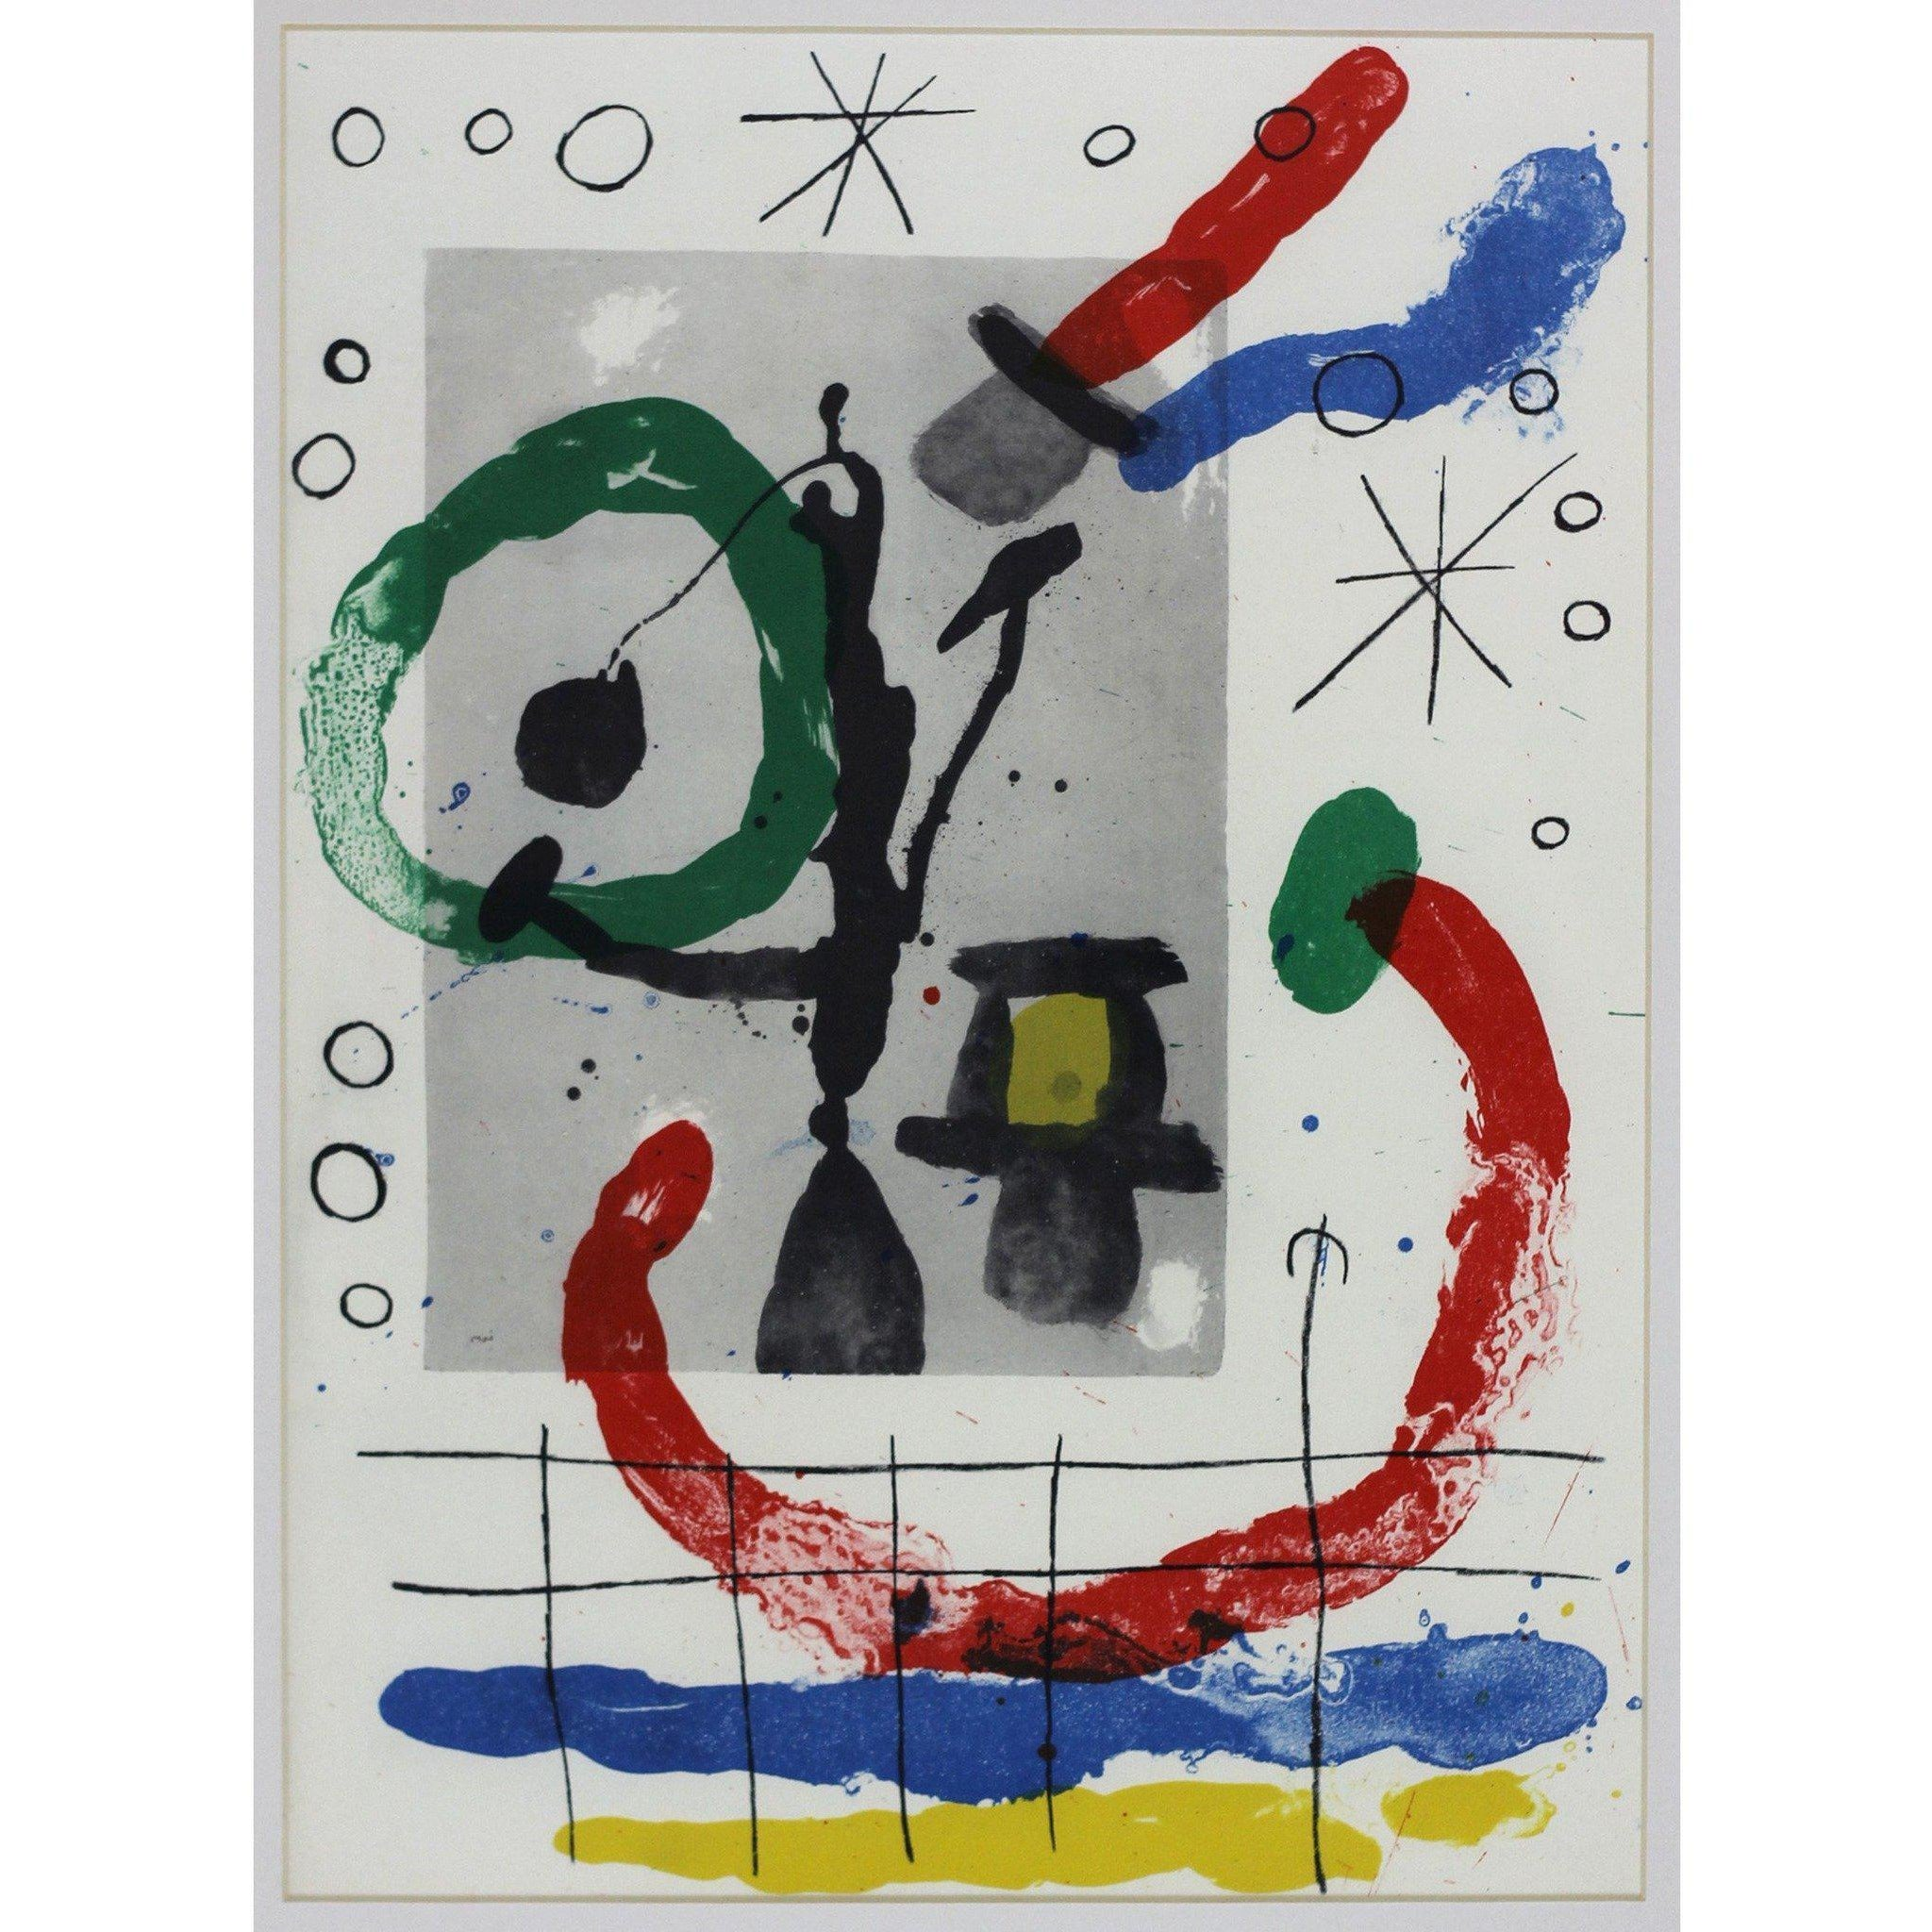 Joan Miro Ltd Ed Lithograph - Derrier le mirroir (C)